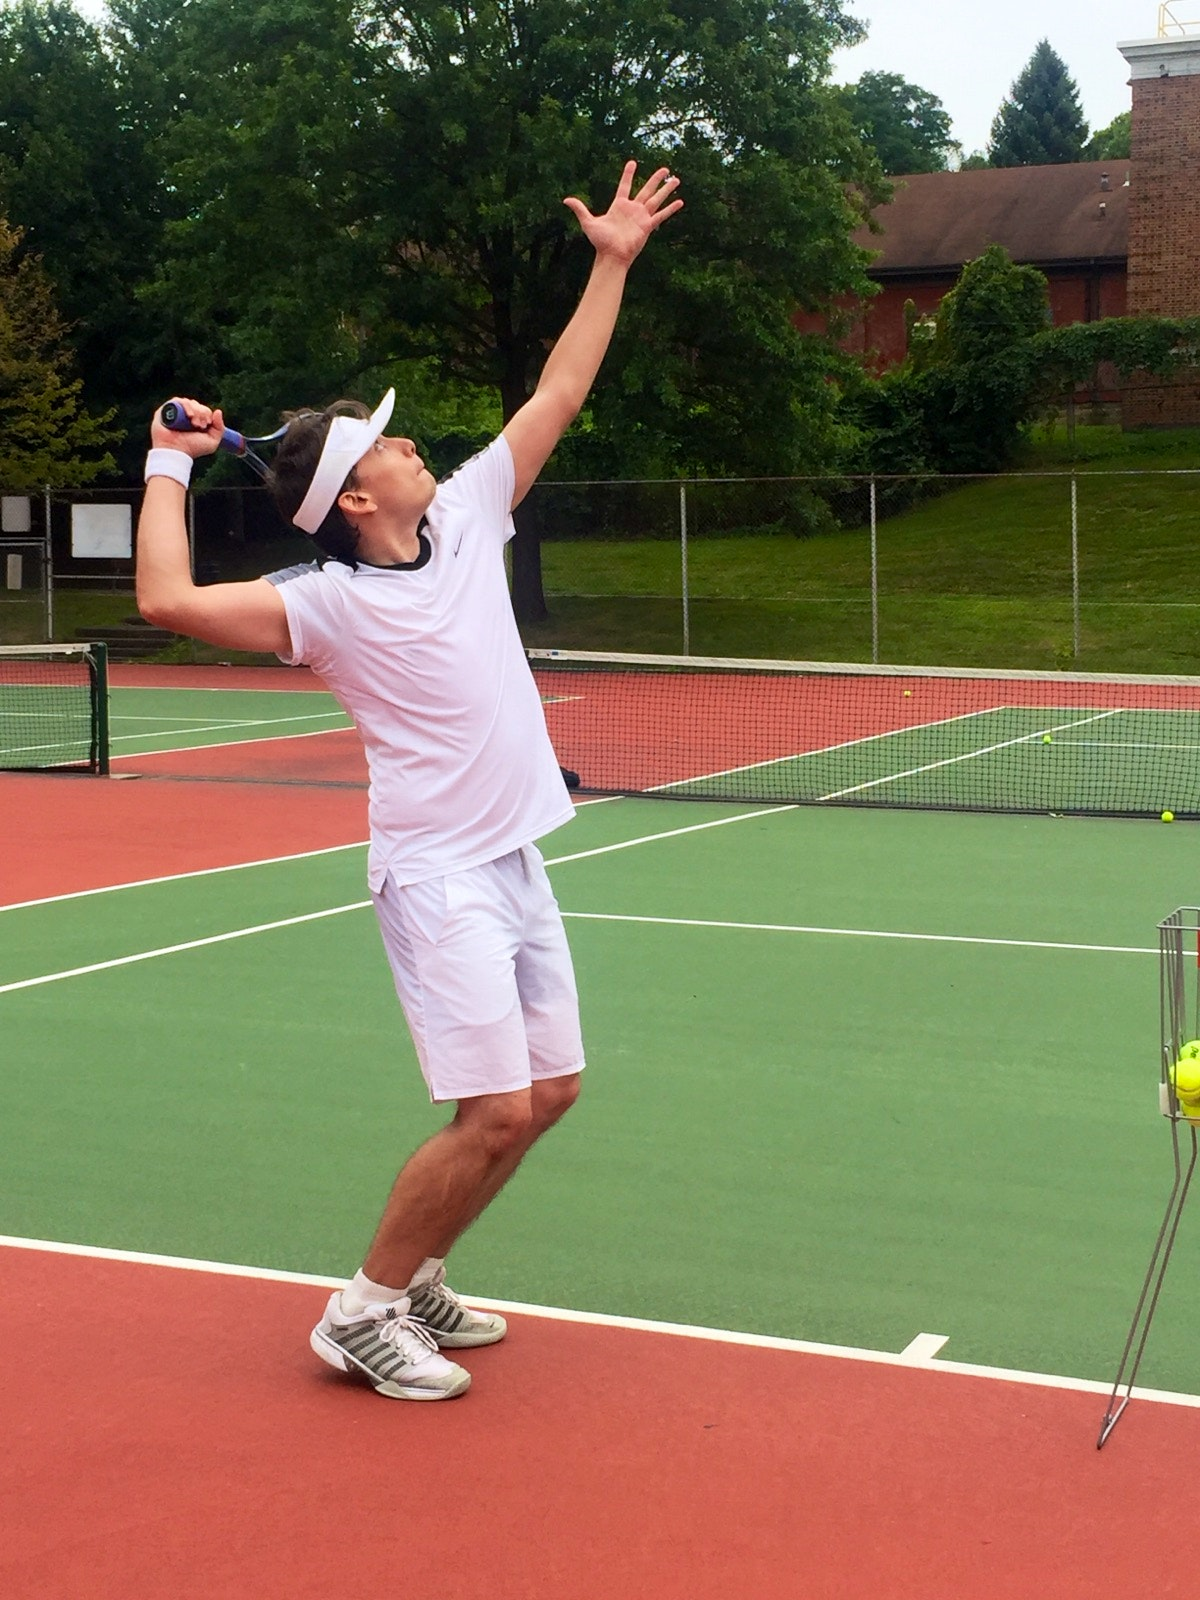 John S. teaches tennis lessons in Pittsburgh, PA